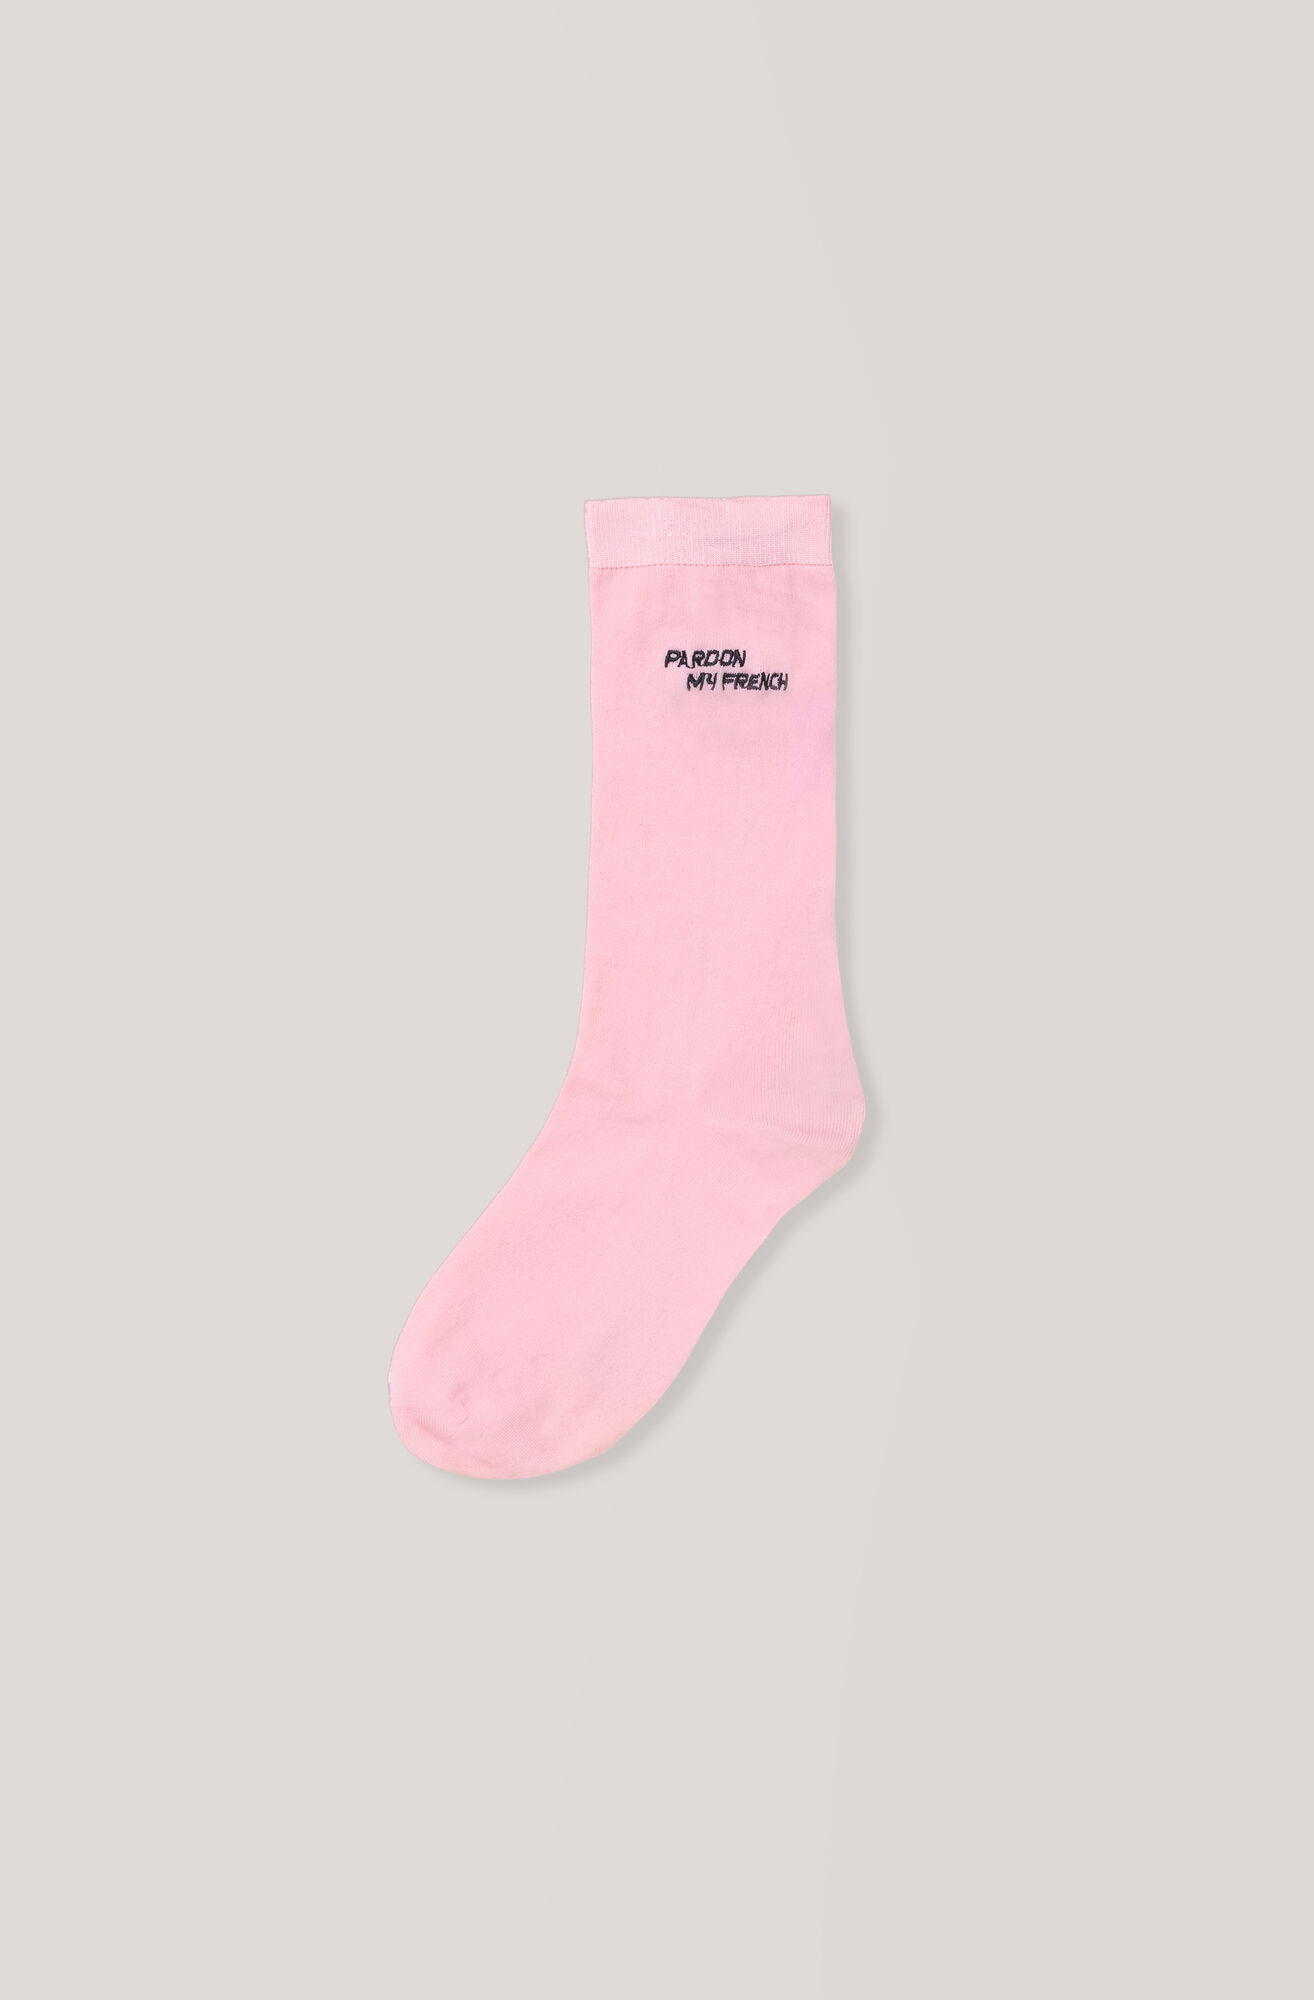 Classon Embroidery Ankle Socks, Pardon, Sea Pink, hi-res